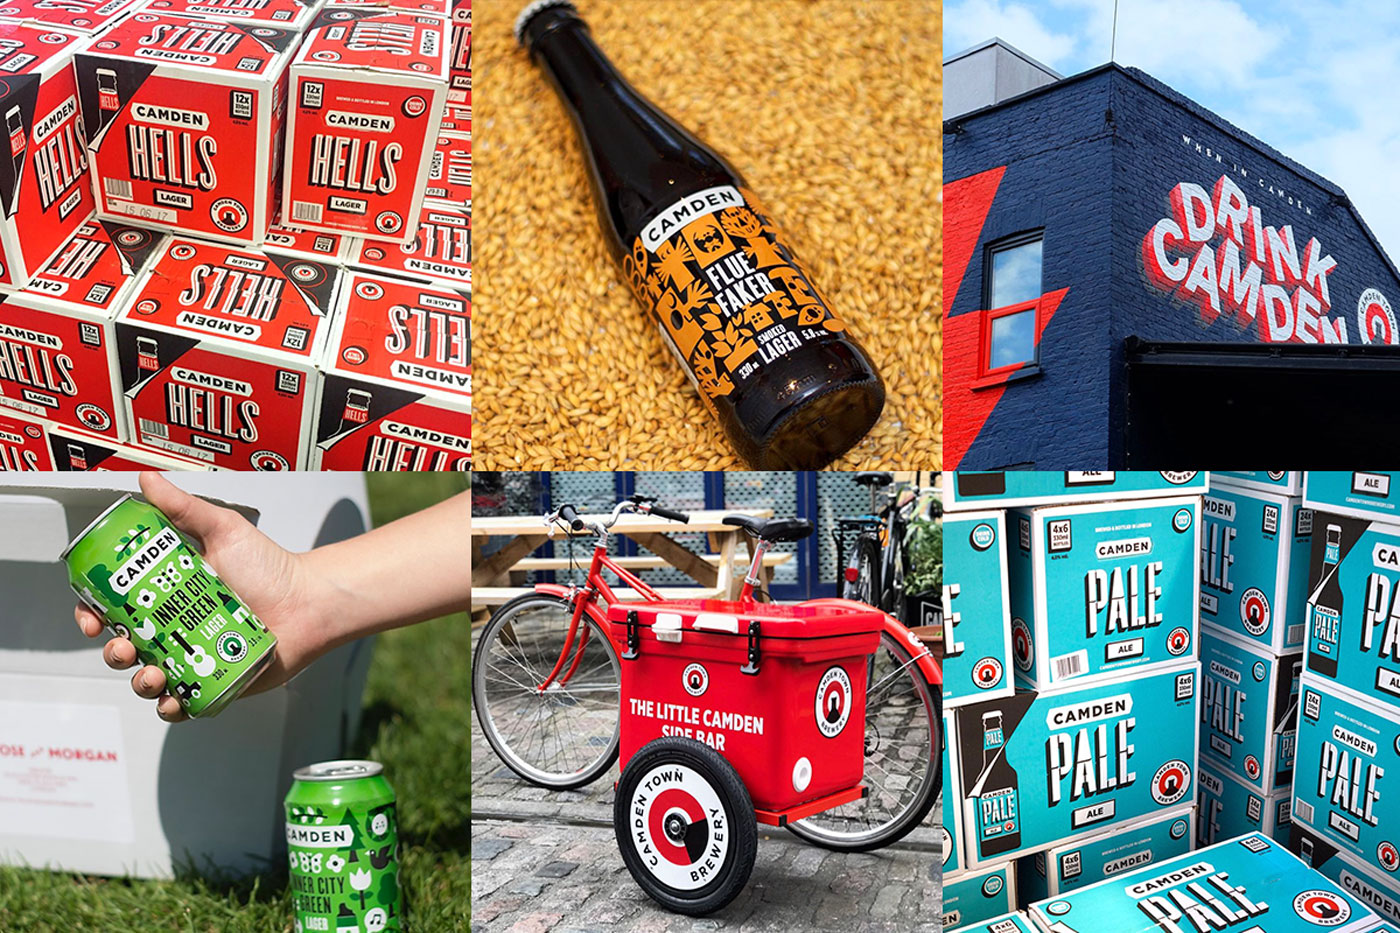 A selection of images from the @camdentownbrewery Instagram.